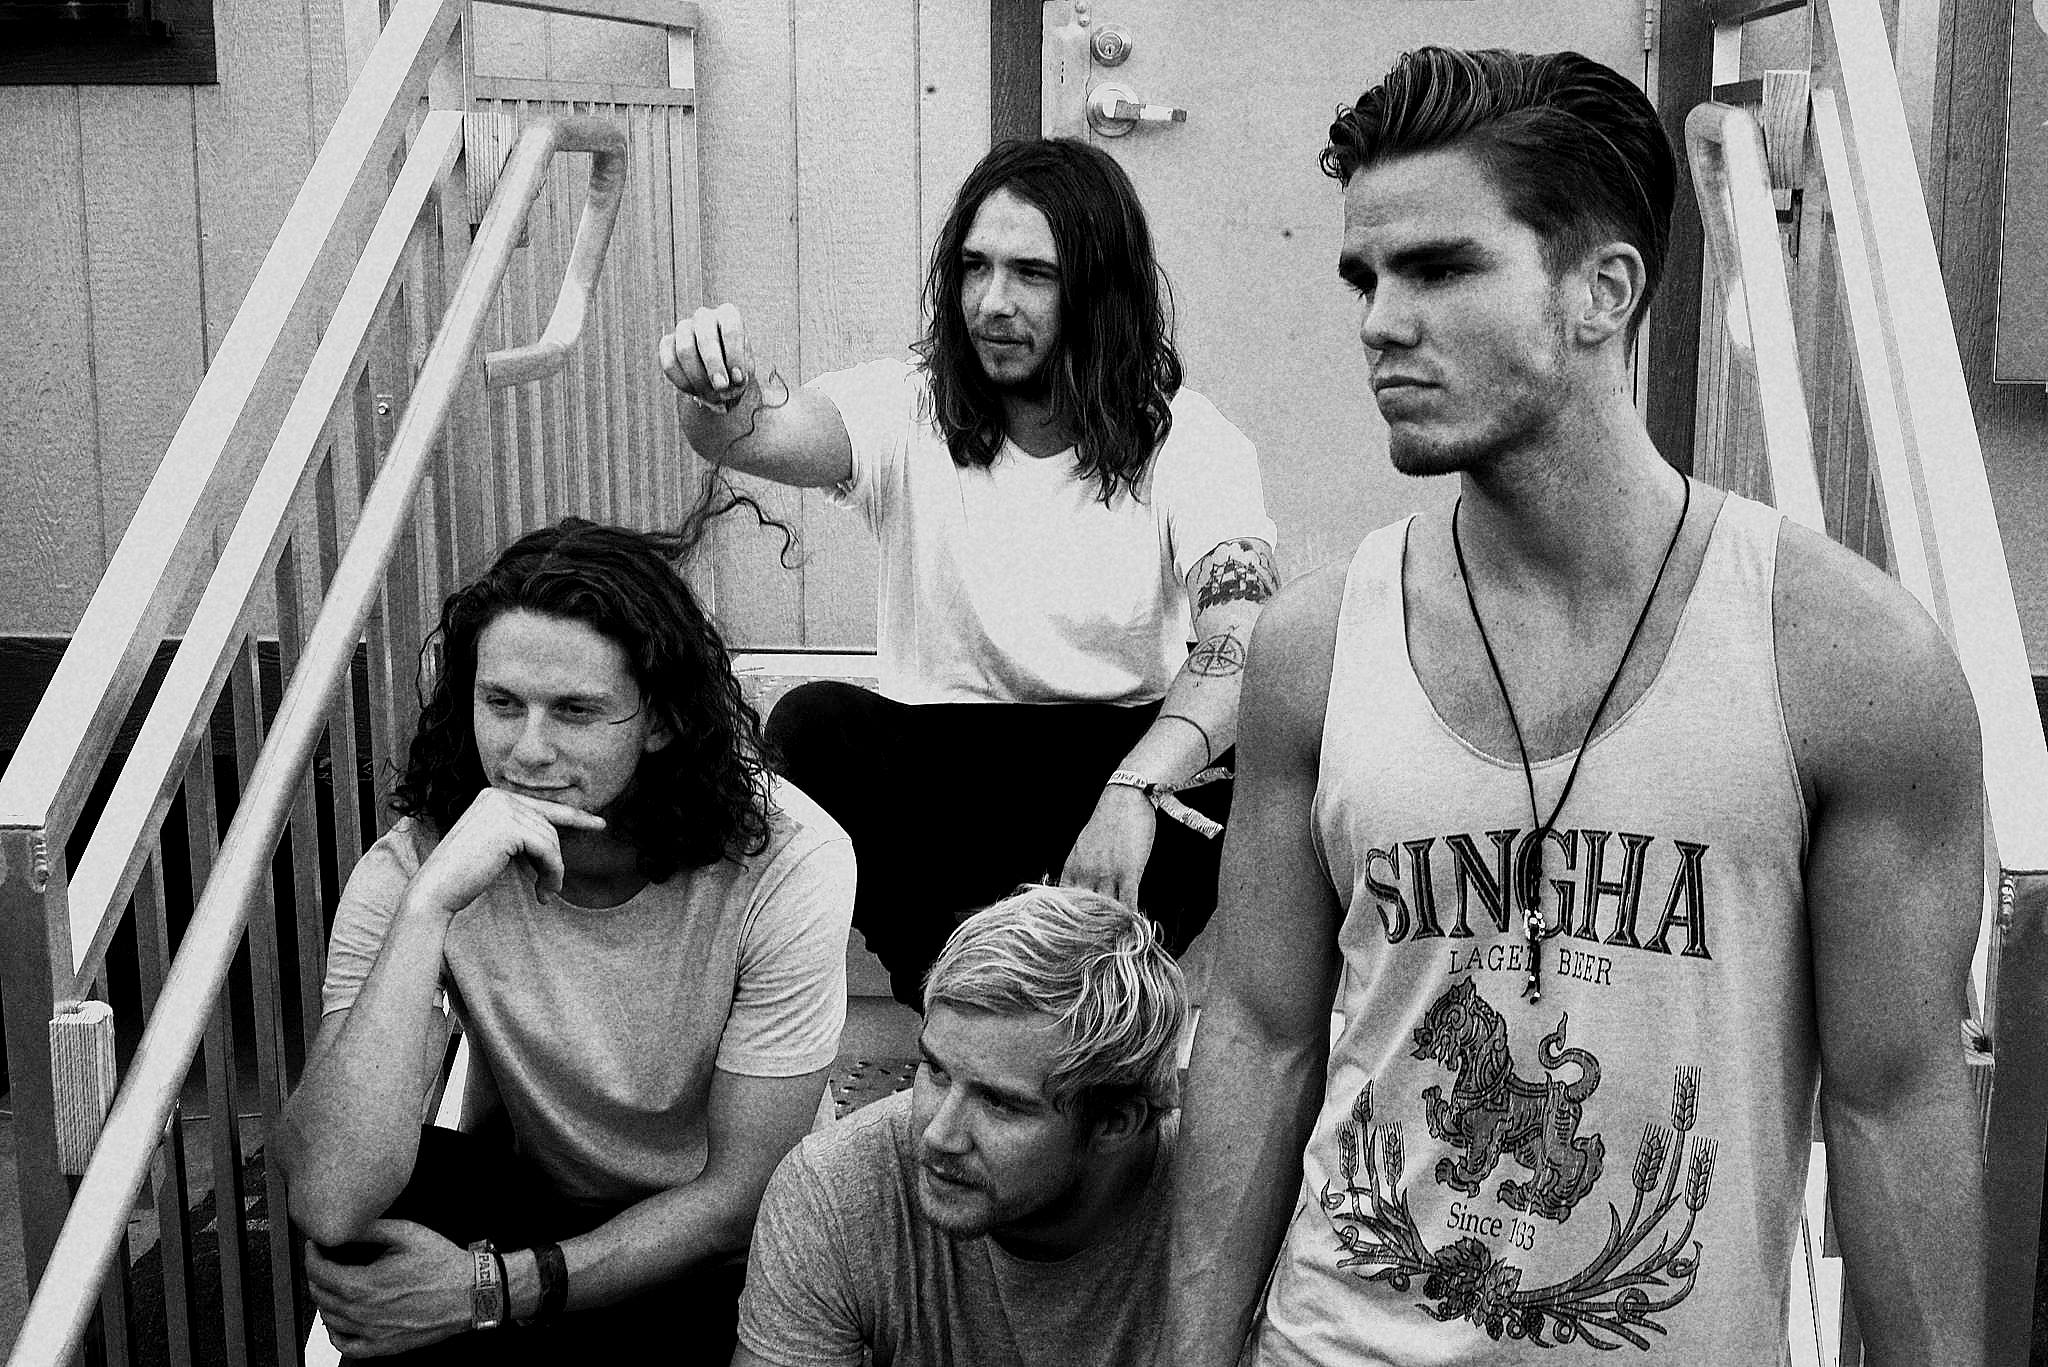 Icelanders Kaleo Rock Out On Soundtrack of New HBO Show, Vinyl!